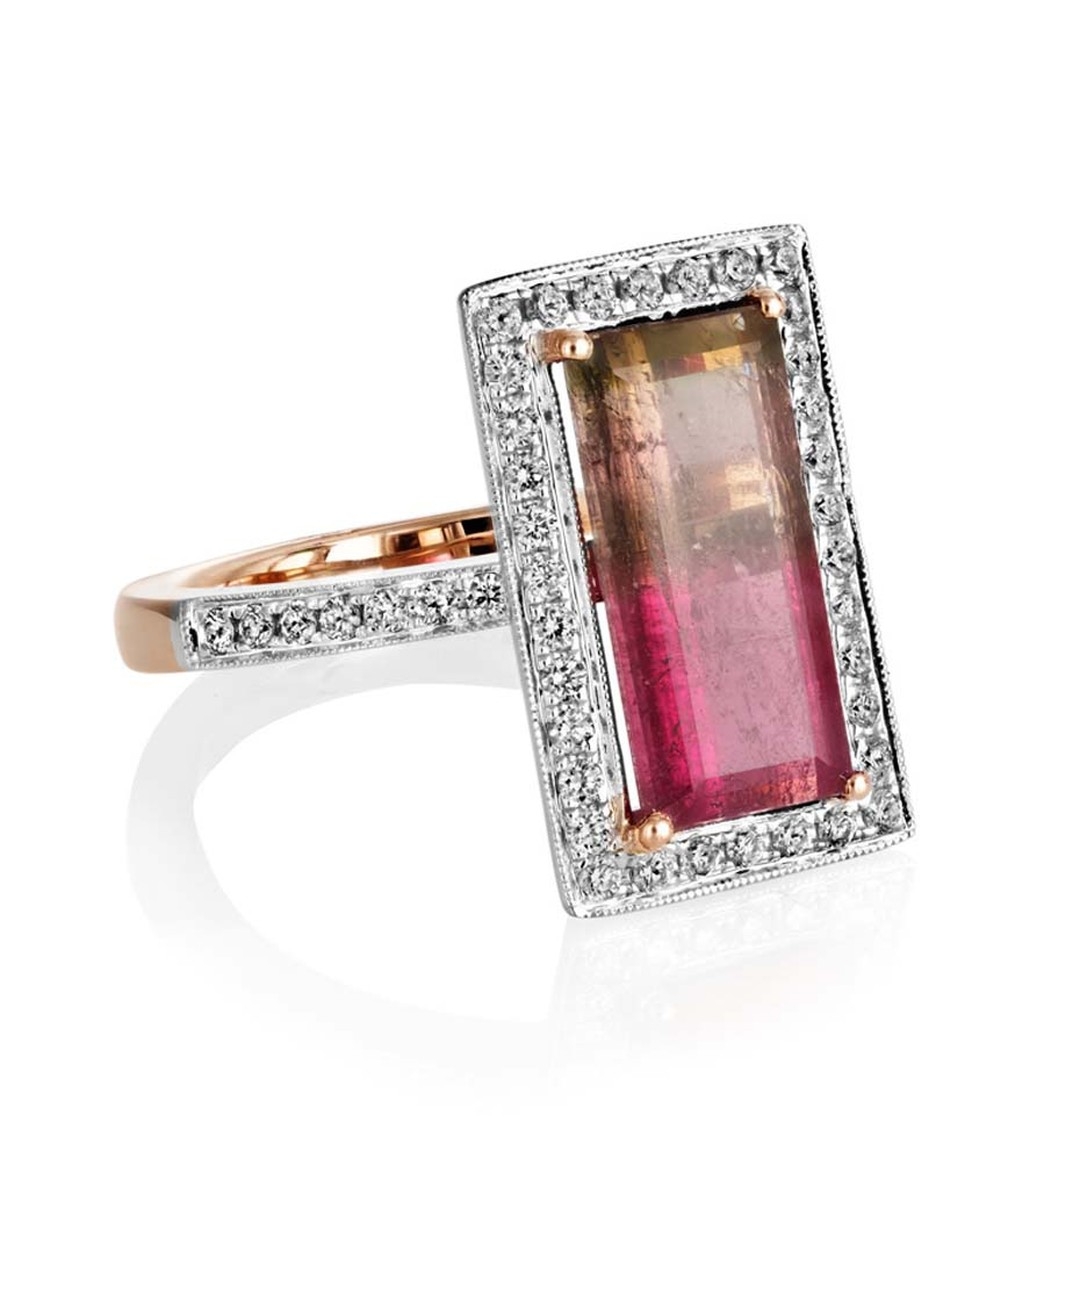 Sheldon Bloomfield ametrine and diamond ring in white and rose gold.